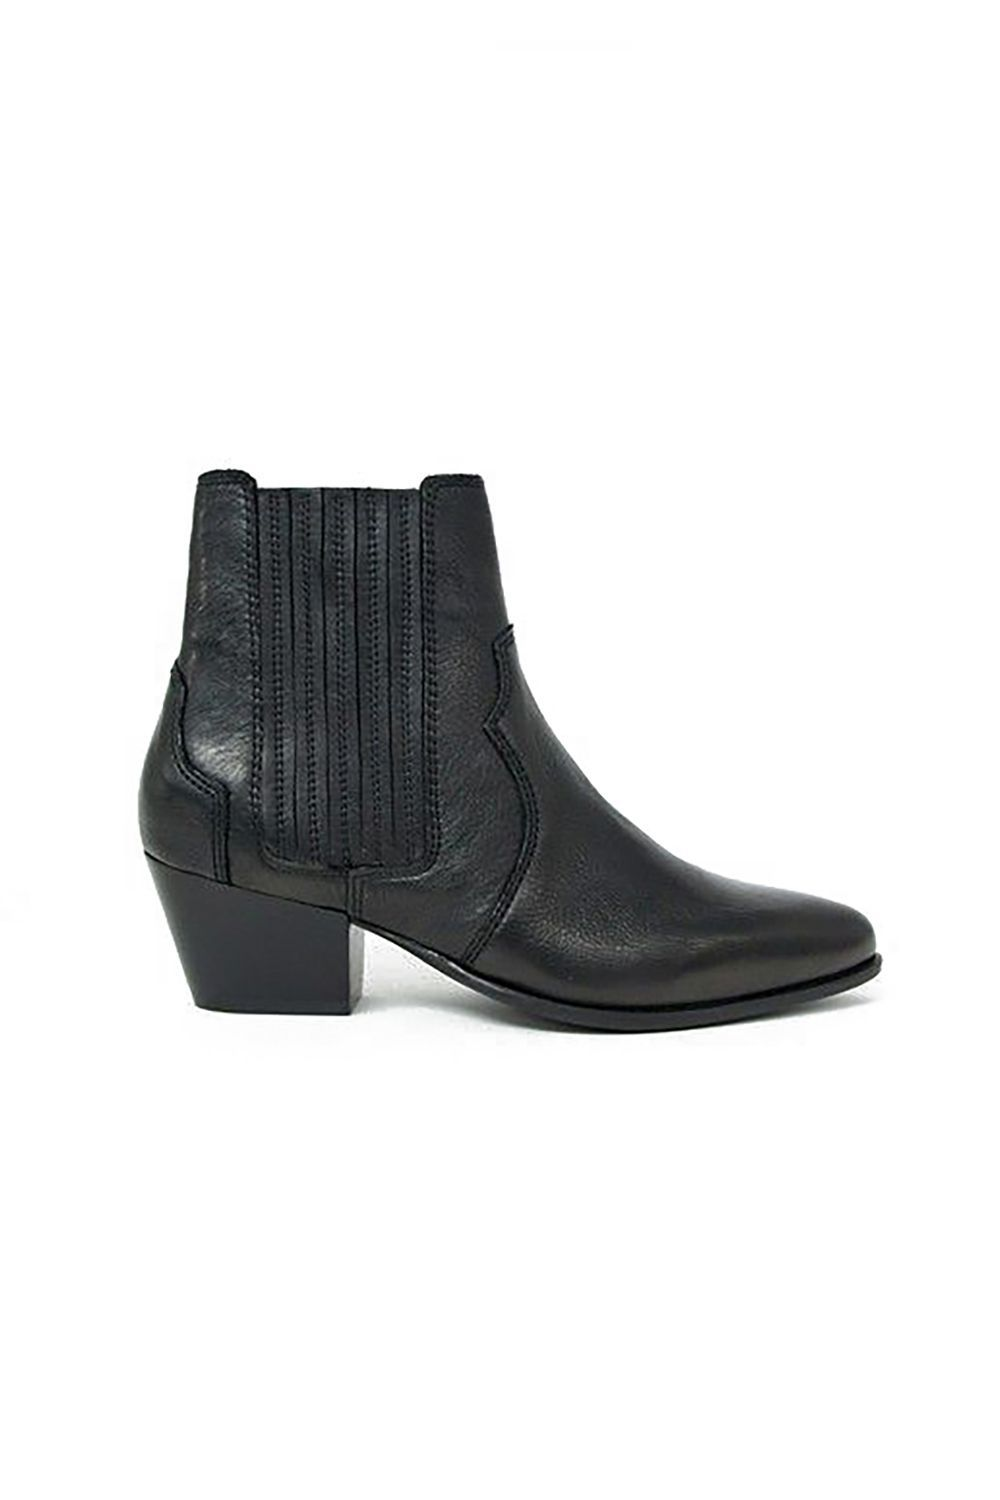 Black Leather Western Chelsea Boots Mango us.asos.com $117.00 SHOP IT The western silhouette trend is very much the rave right now and  I'm here for it. For those looking for a failsafe pair, Mango's pointed-toed western Chelsea boot hits the calf at precisely at the most flattering spot.